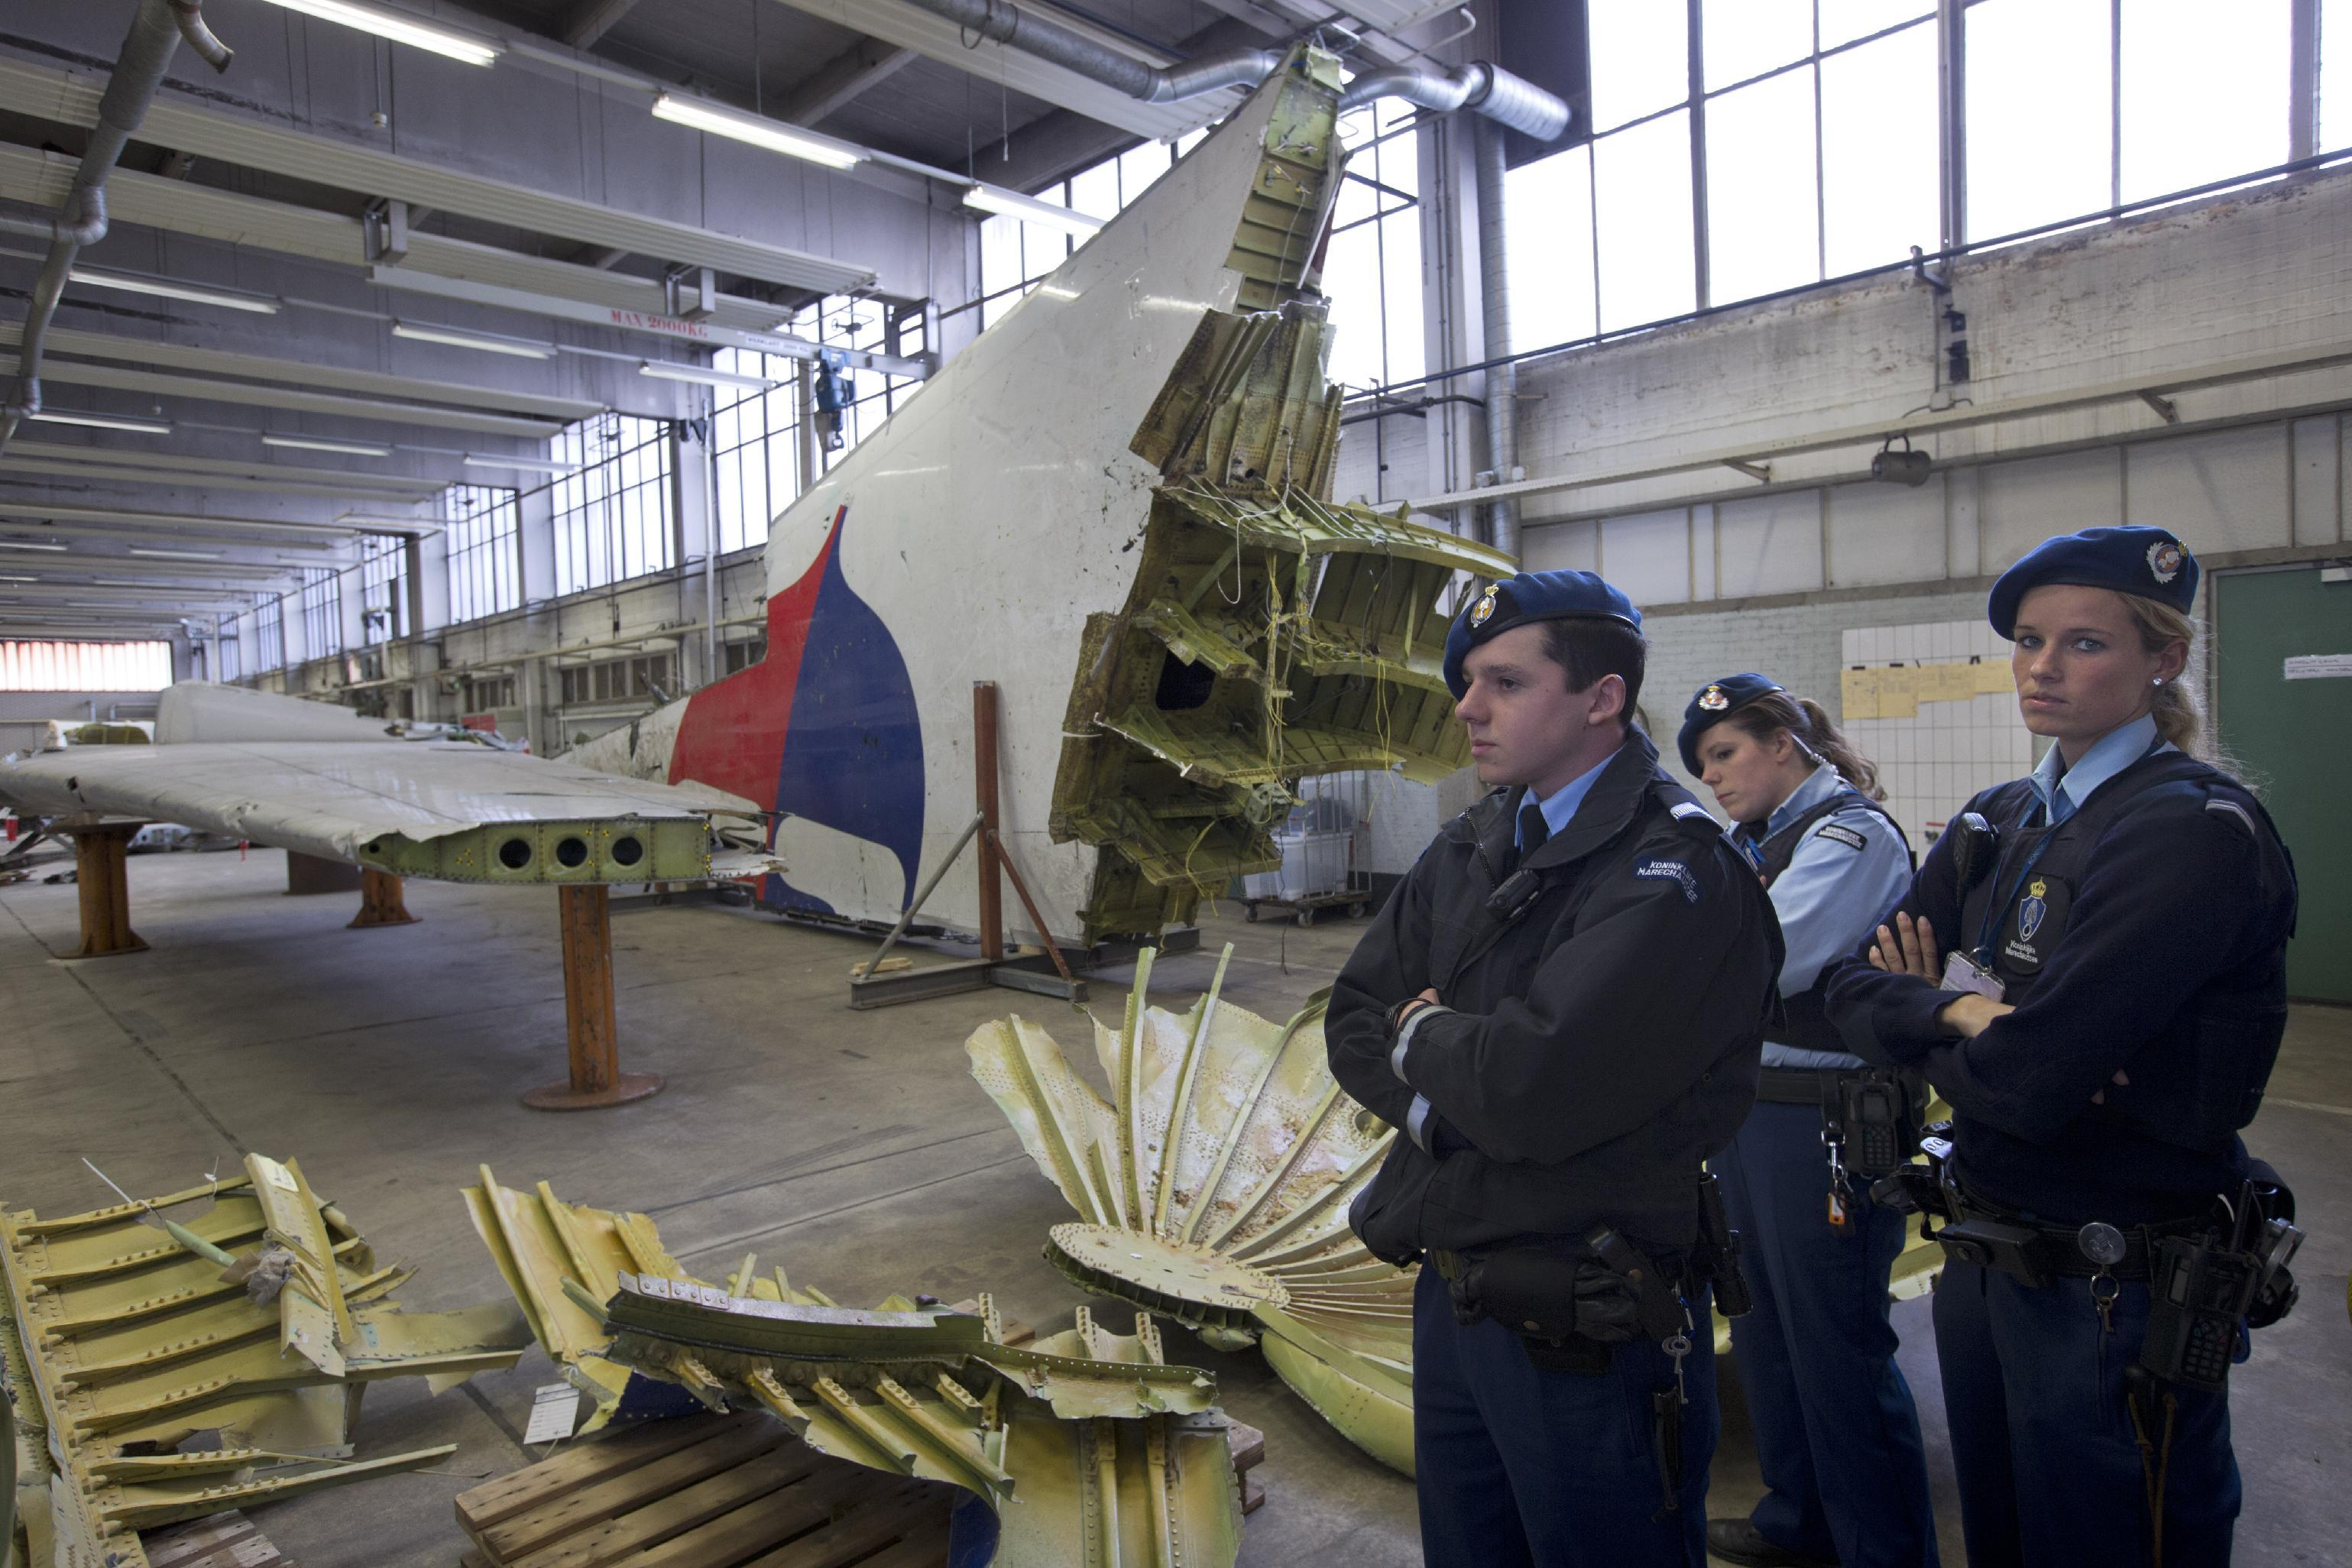 MH17 next of kin finally view wreckage of downed flight